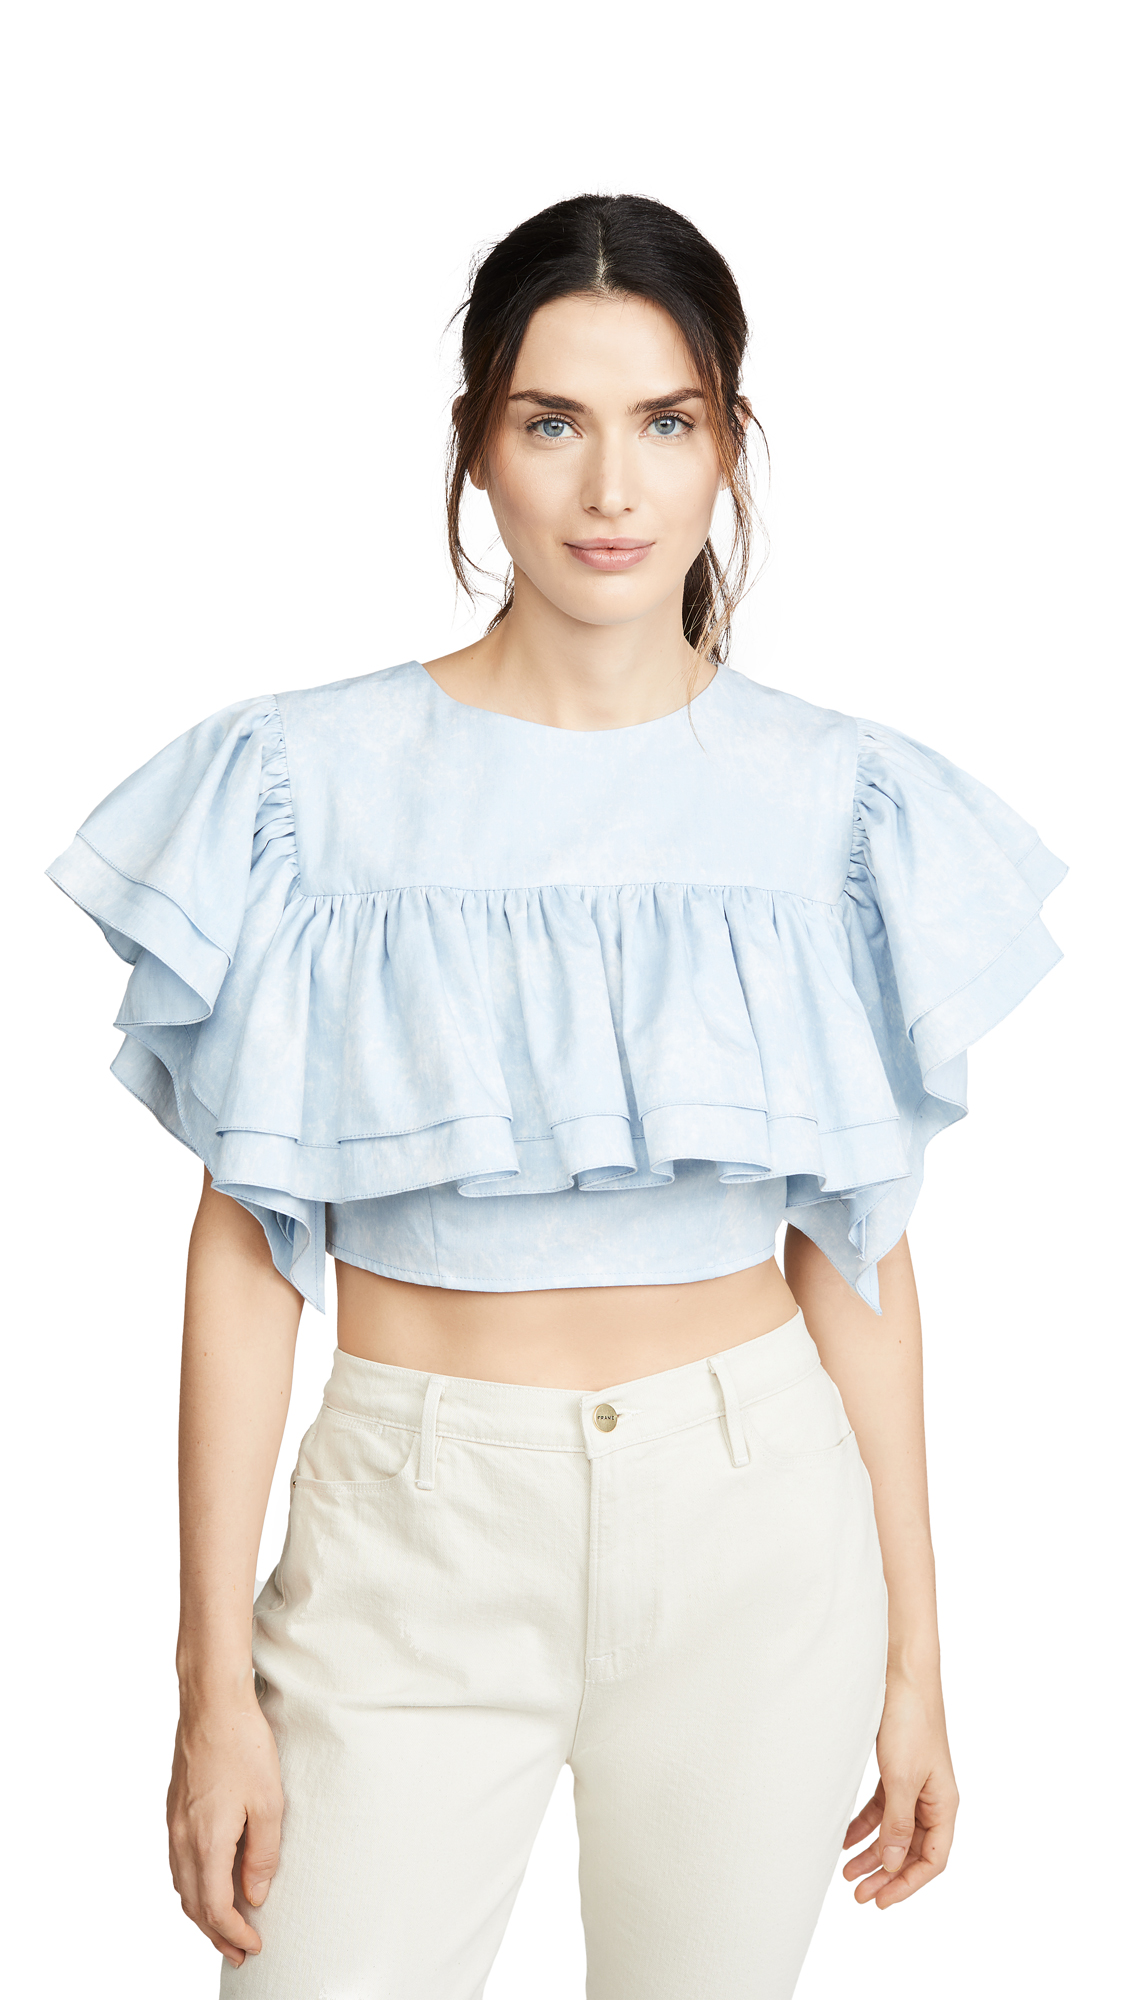 Ksenia Schnaider Cropped Top with Ruffles - 60% Off Sale